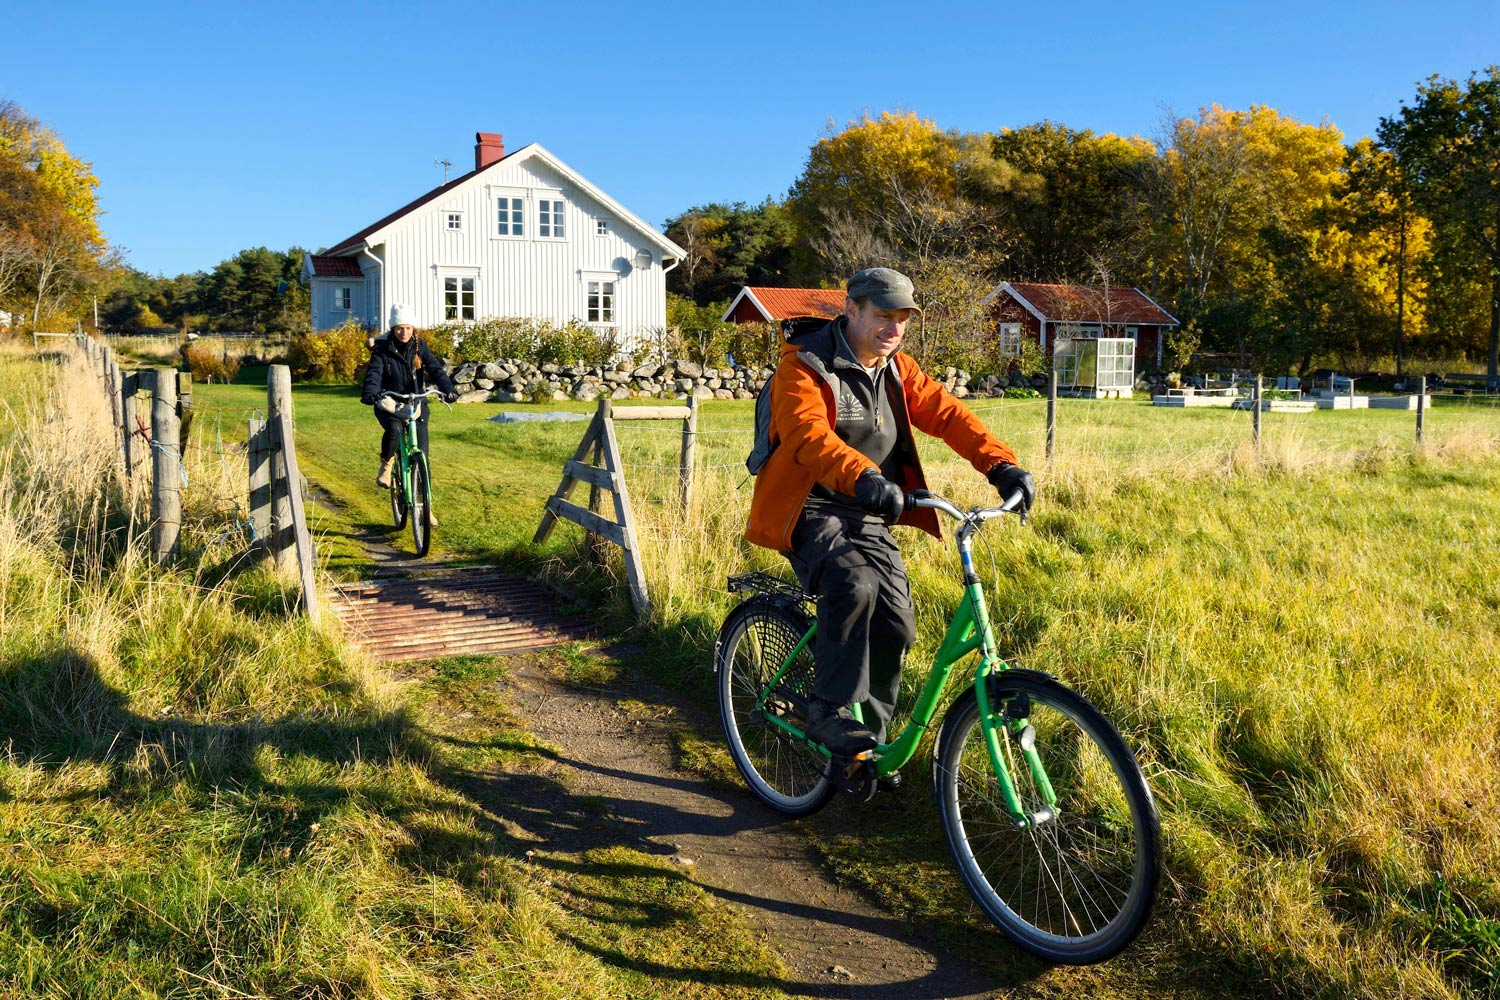 Your bike is your best friend on the car-free Koster Islands. One of the best seasons to get well acquainted with the Koster Islands from your bike is autumn.